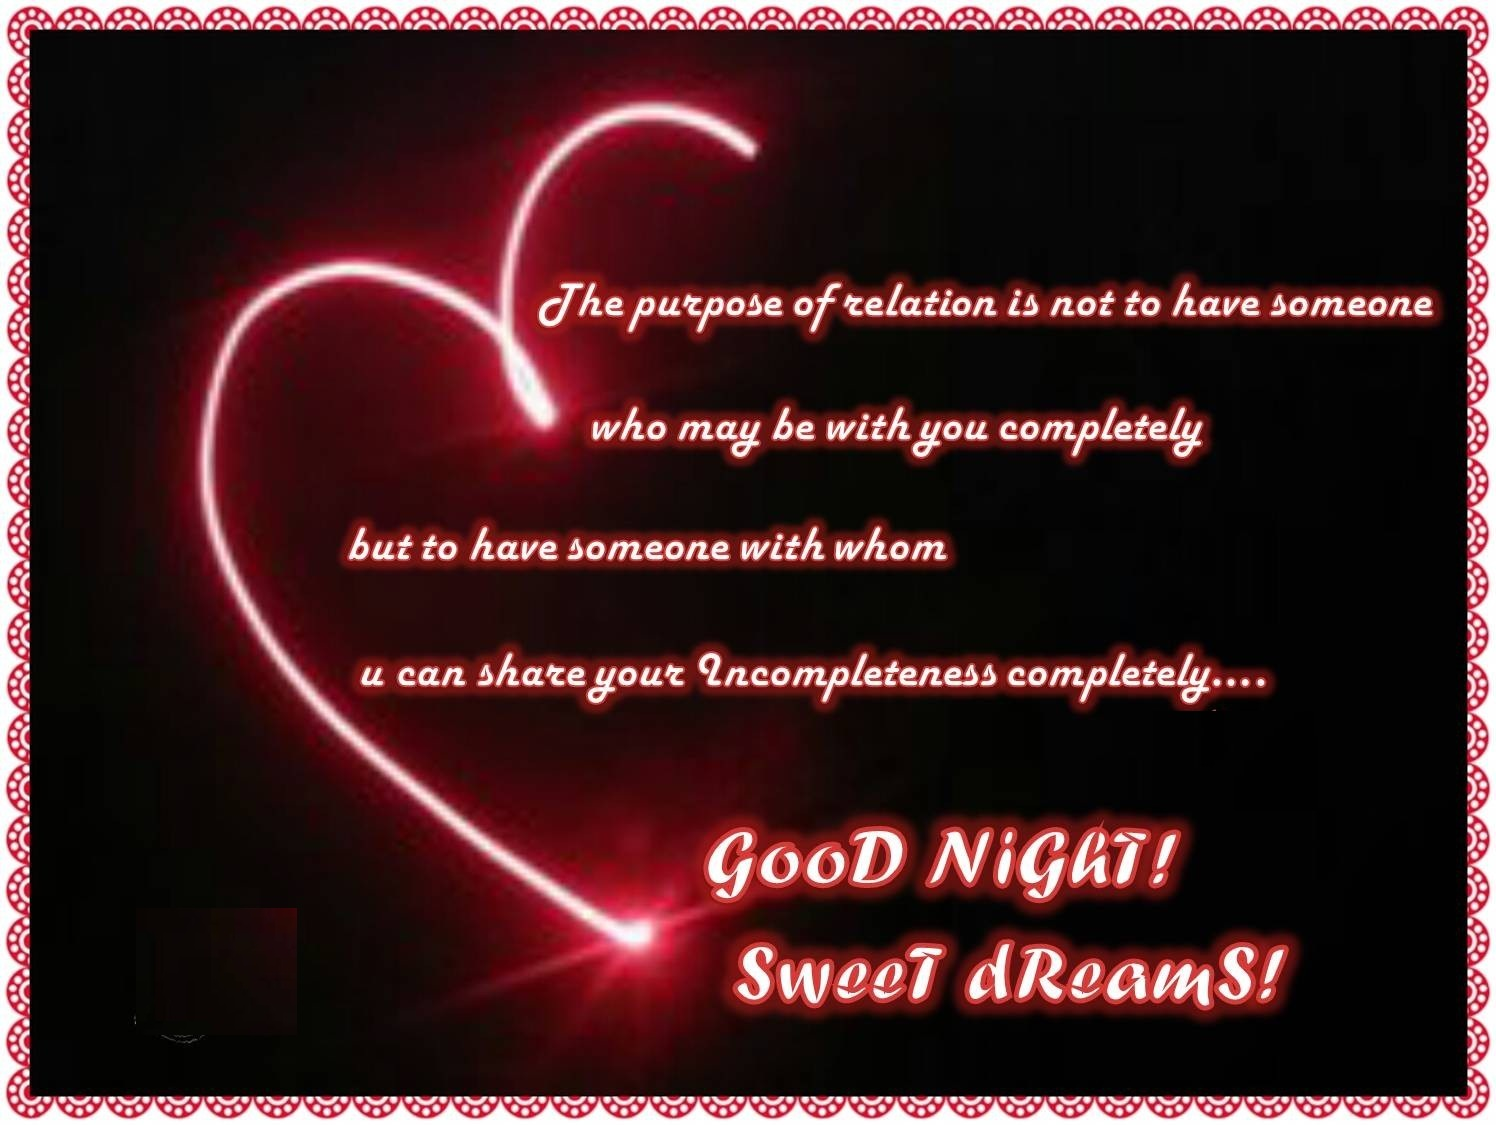 Good Night Quotes For Him: Good Night Love Wishes And Images: Good Night Love